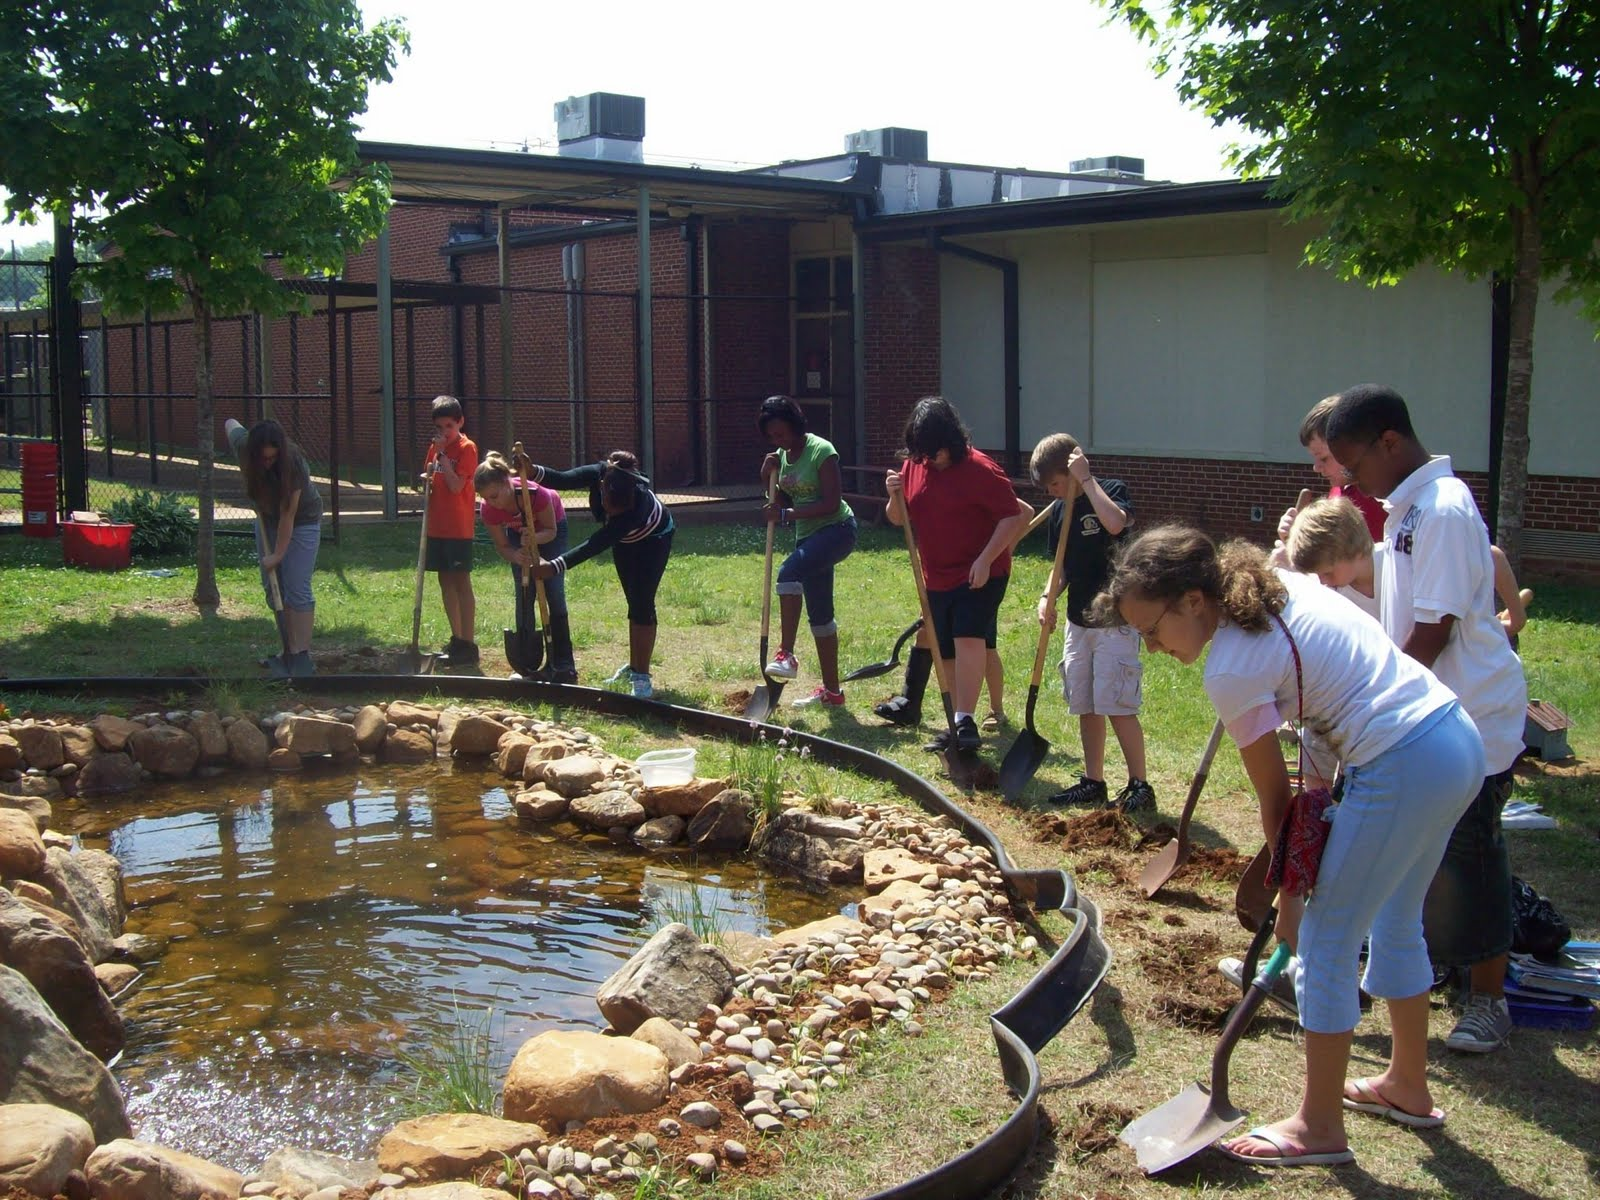 Outdoor Classroom Ideas Elementary School ~ Whitesburg middle school outdoor classroom